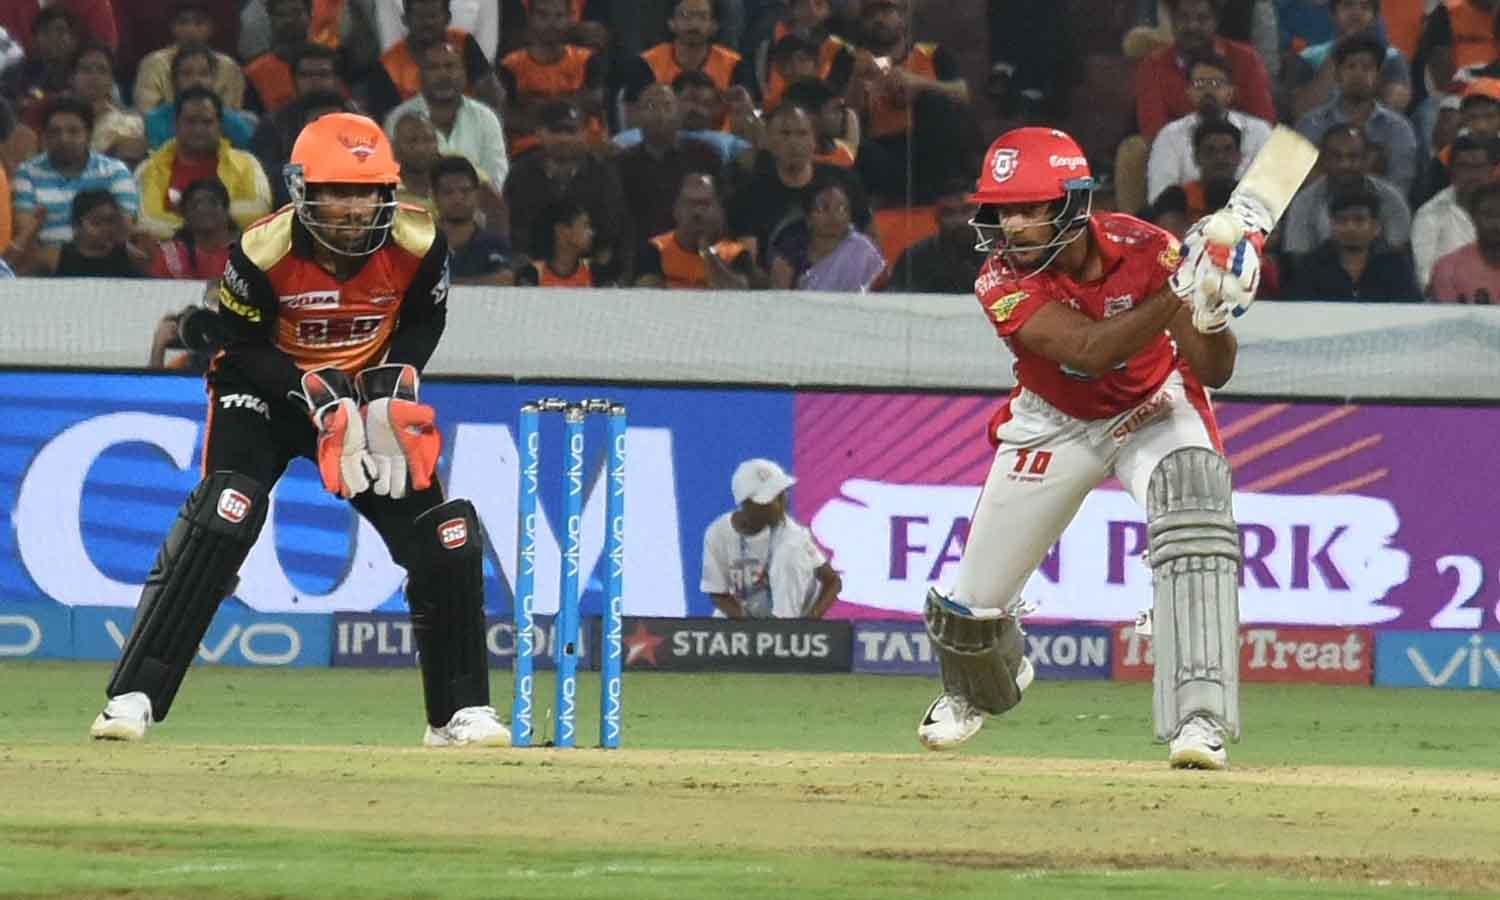 Mayank Agarwal In Action During An IPL 2018 Match Images